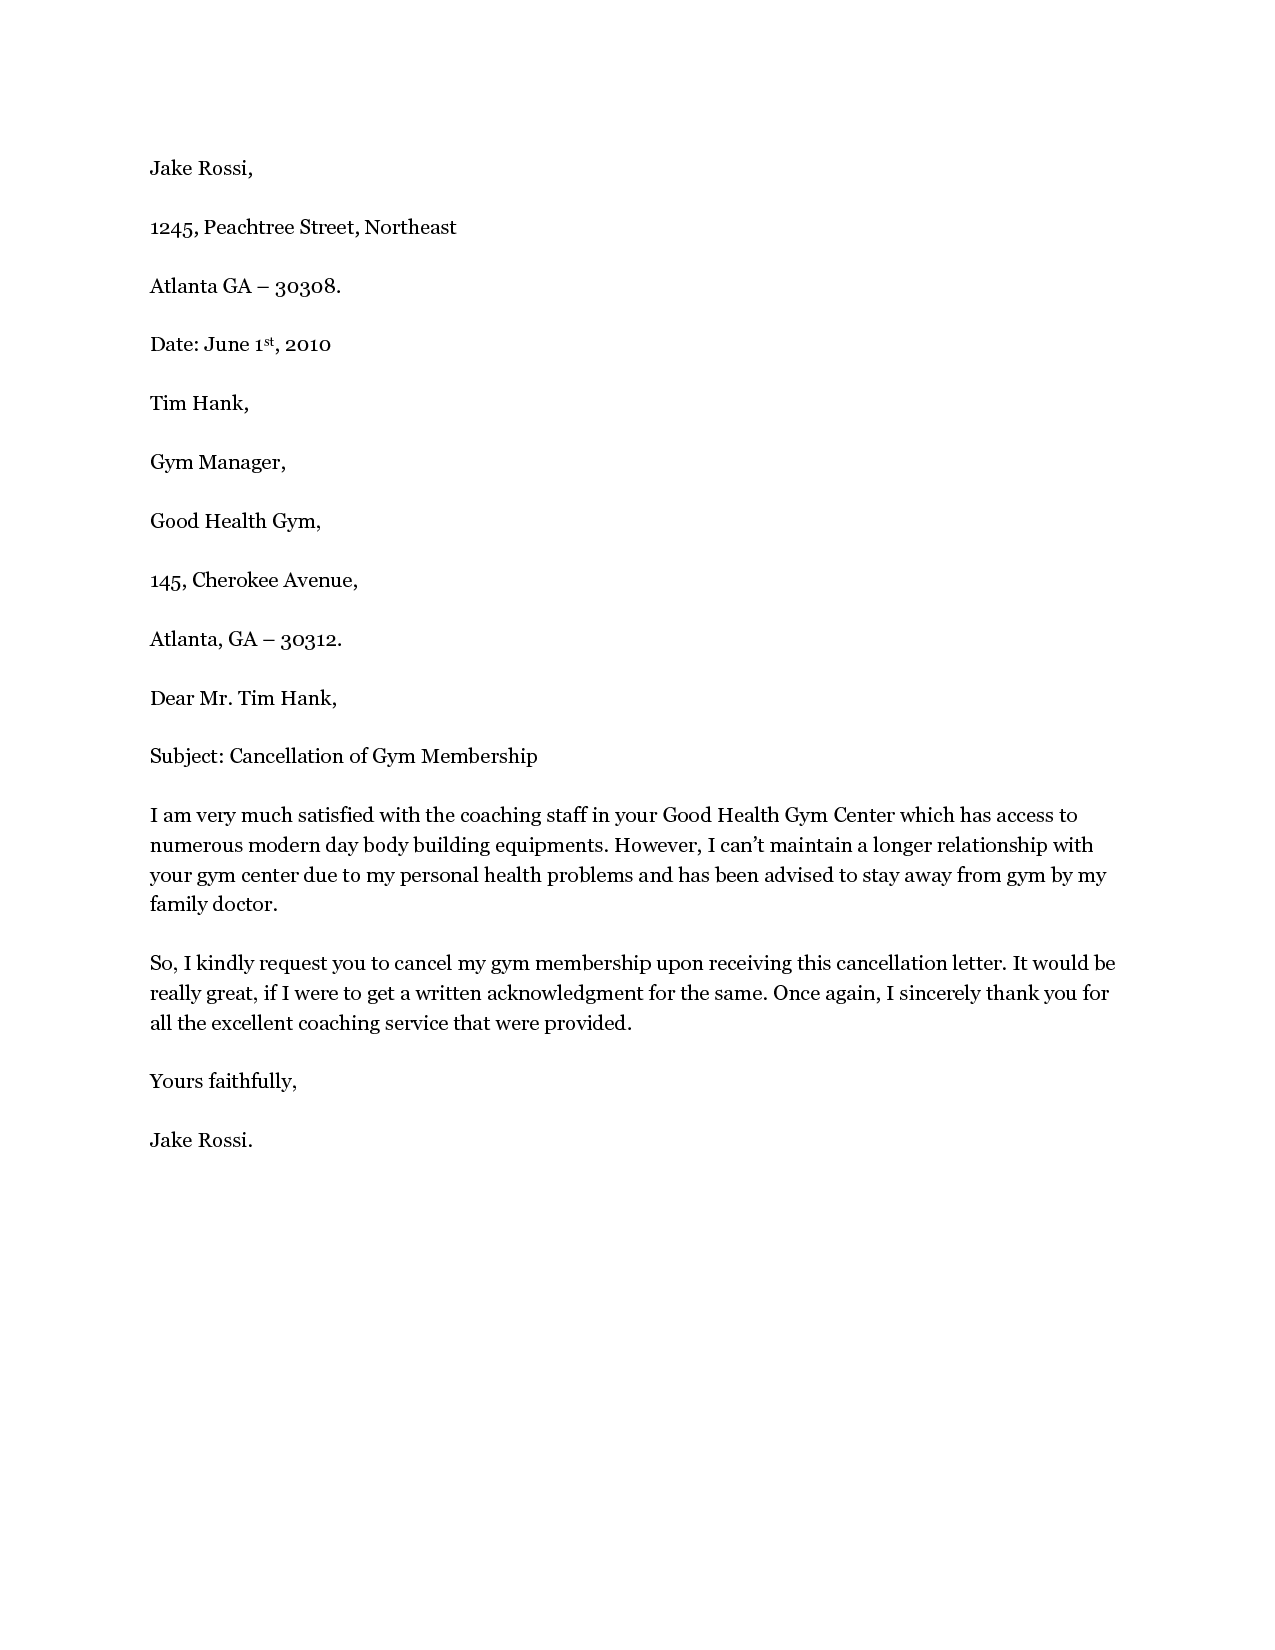 Writing a Gym Membership Cancellation Letter [with Sample